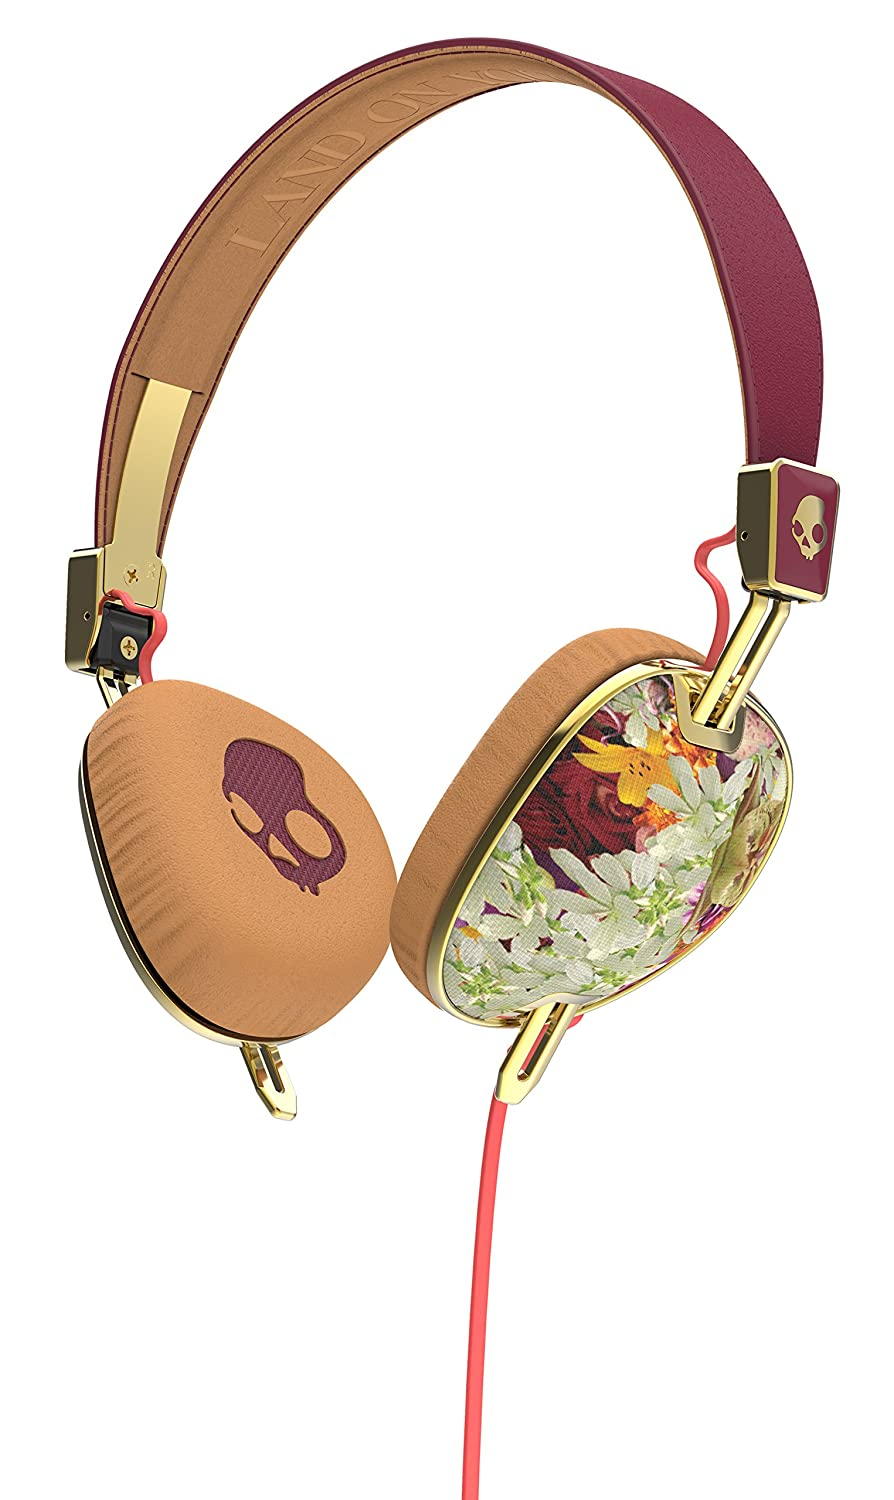 Skullcandy S5AVGM-395 Knockout Rose Gold Headphone with ...